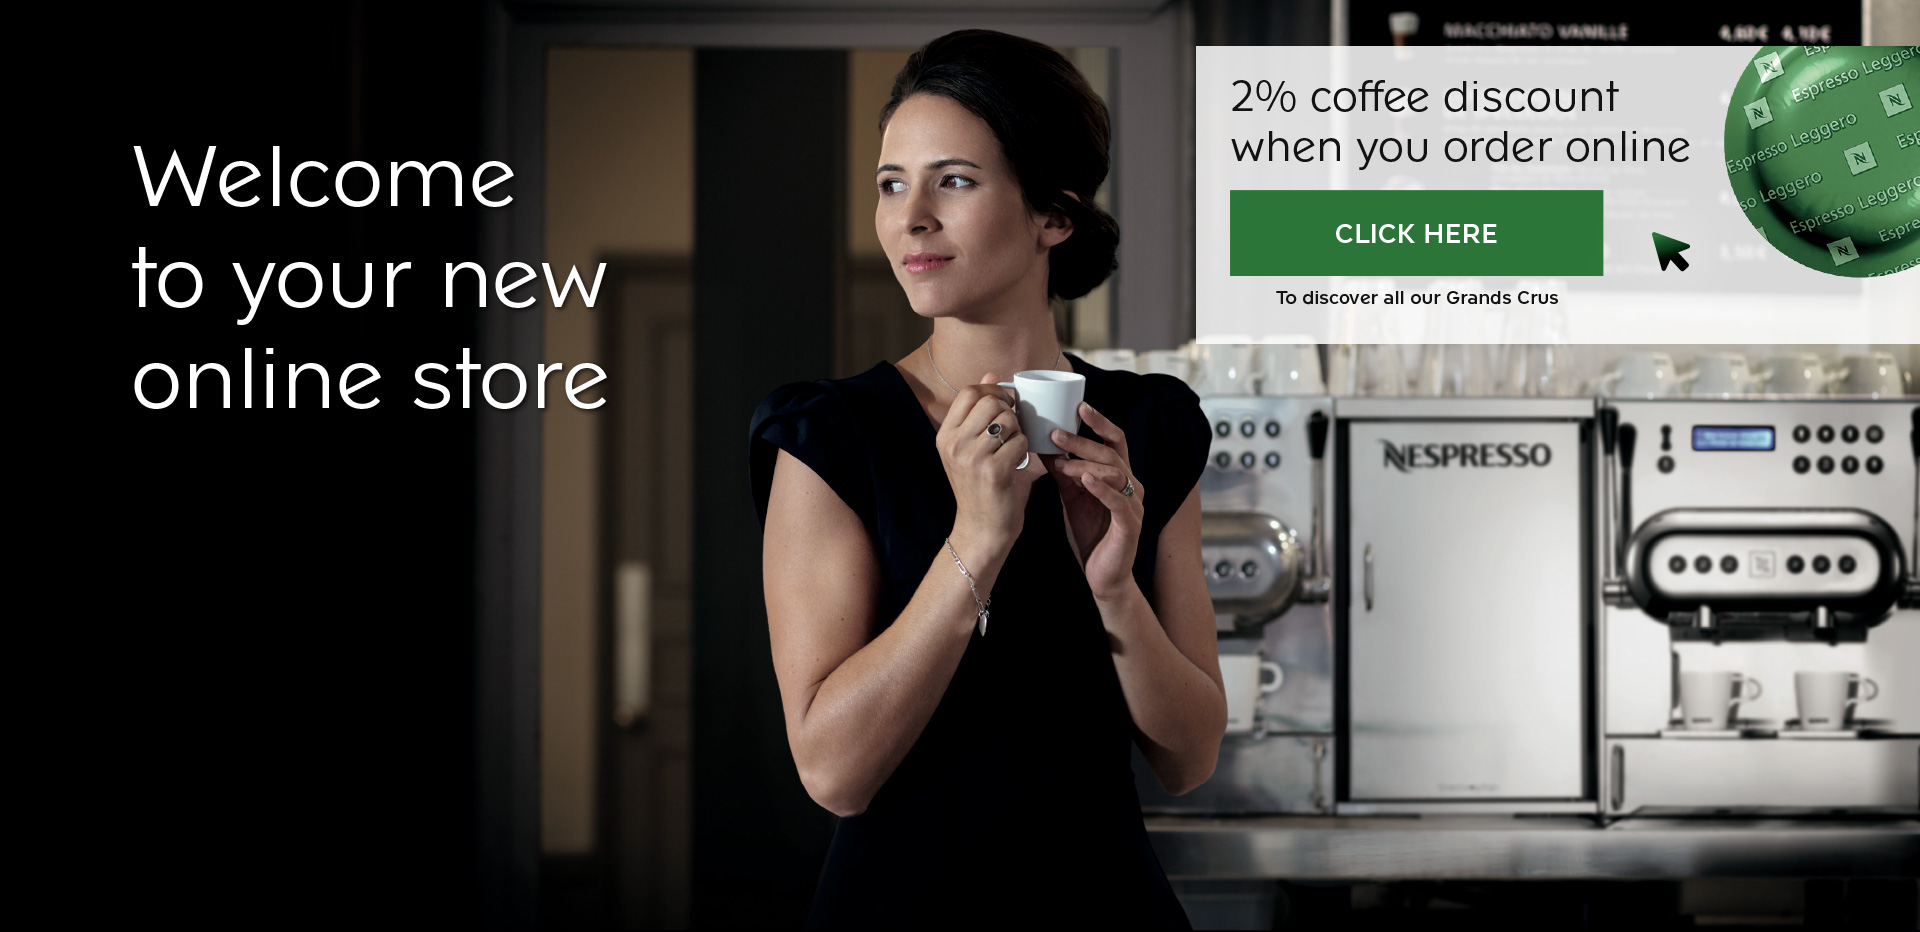 Nespresso Professional - Launch campaign 2% coffee rebate